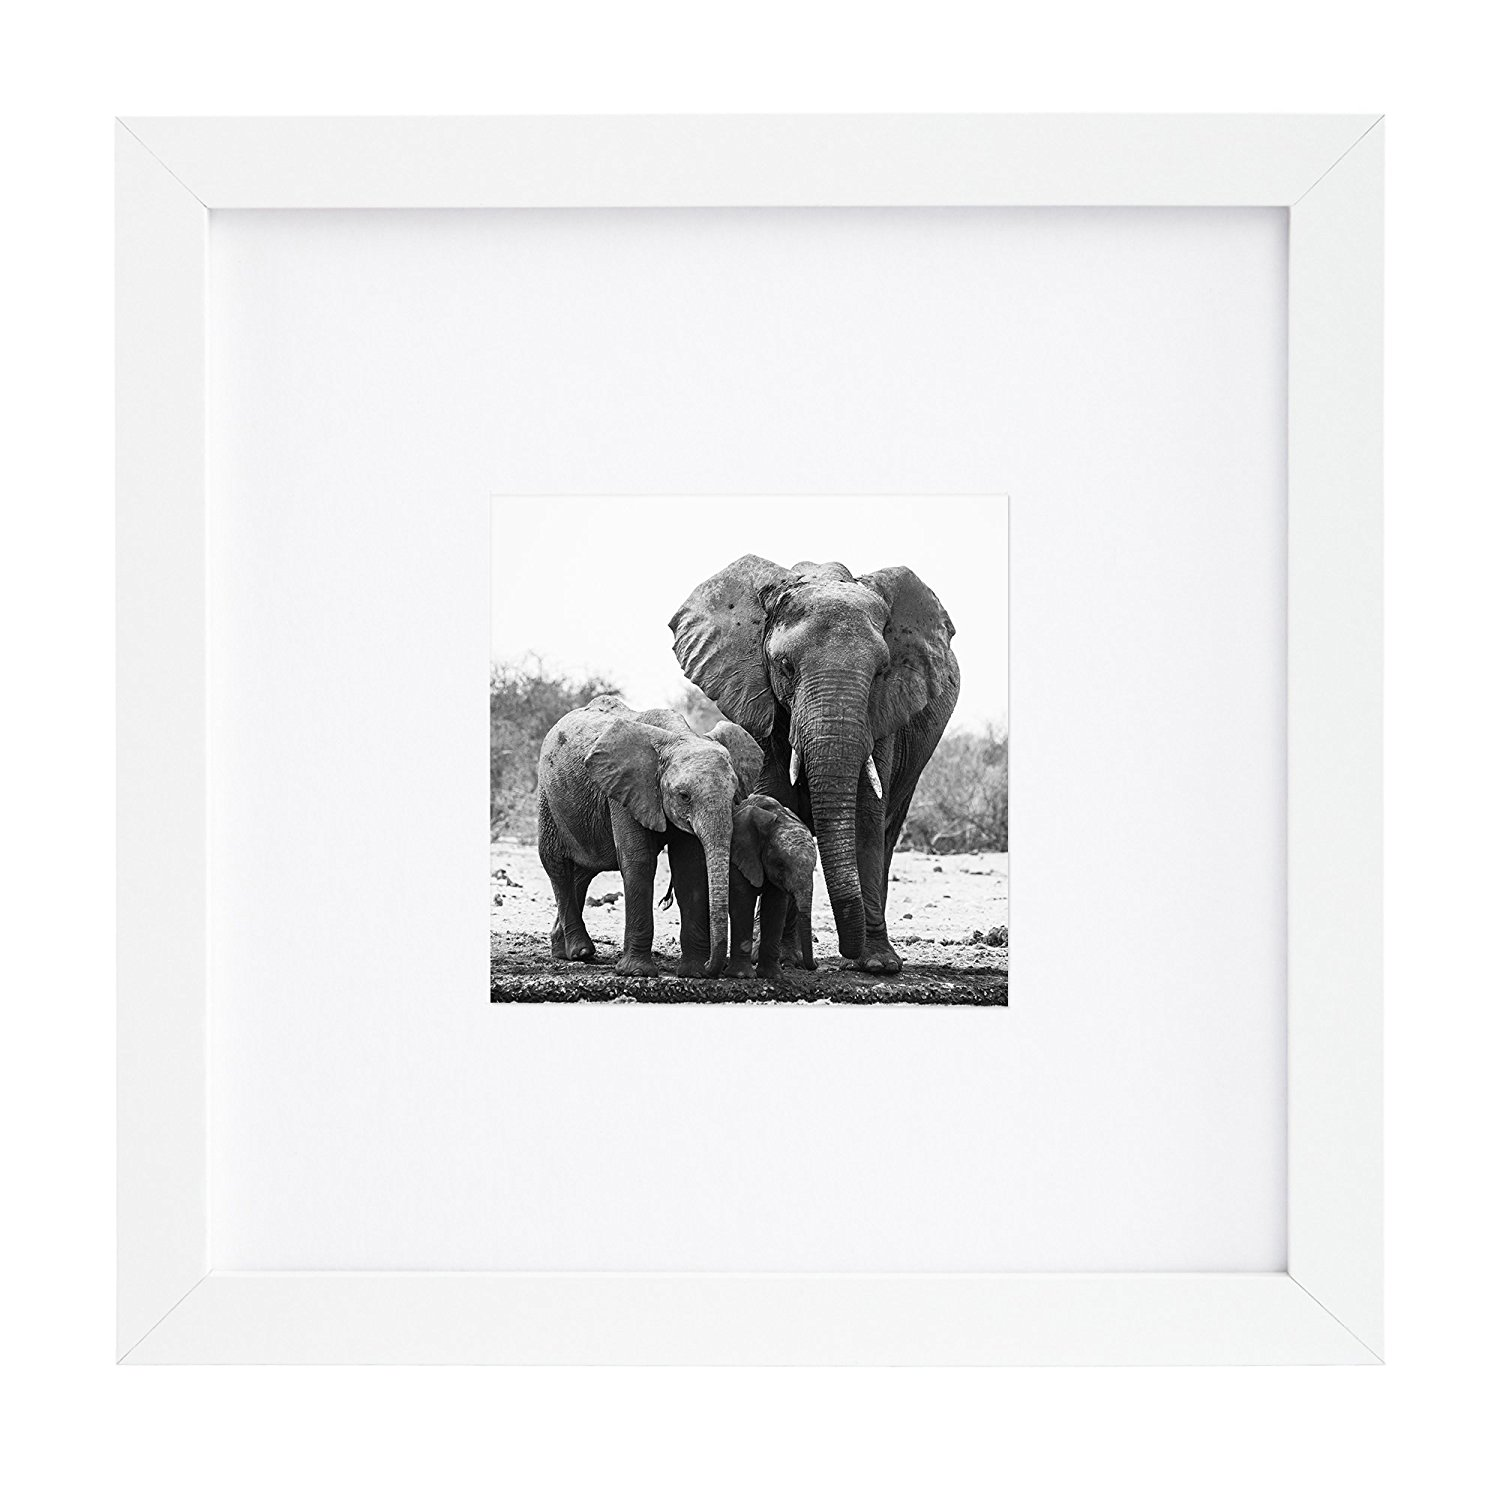 8x8 White Picture Frame Matted to Fit Pictures 4x4 Inches or 8x8 Without Mat by Americanflat